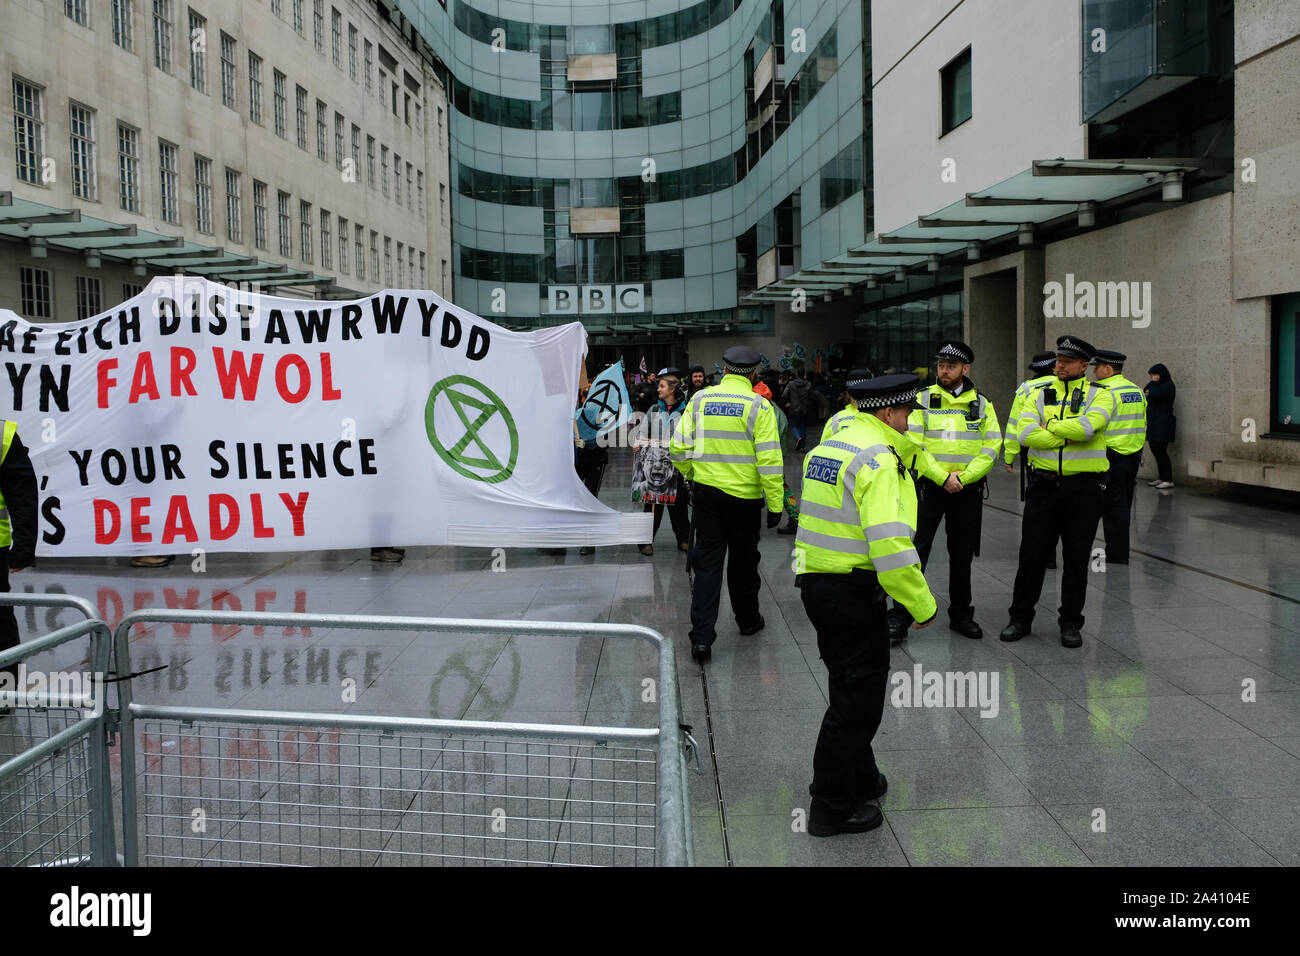 BBC, Portland Place, London, UK. 11th Oct, 2019. Extinction Rebellion protesters outside the BBC in London. Credit: Matthew Chattle/Alamy Live News Stock Photo